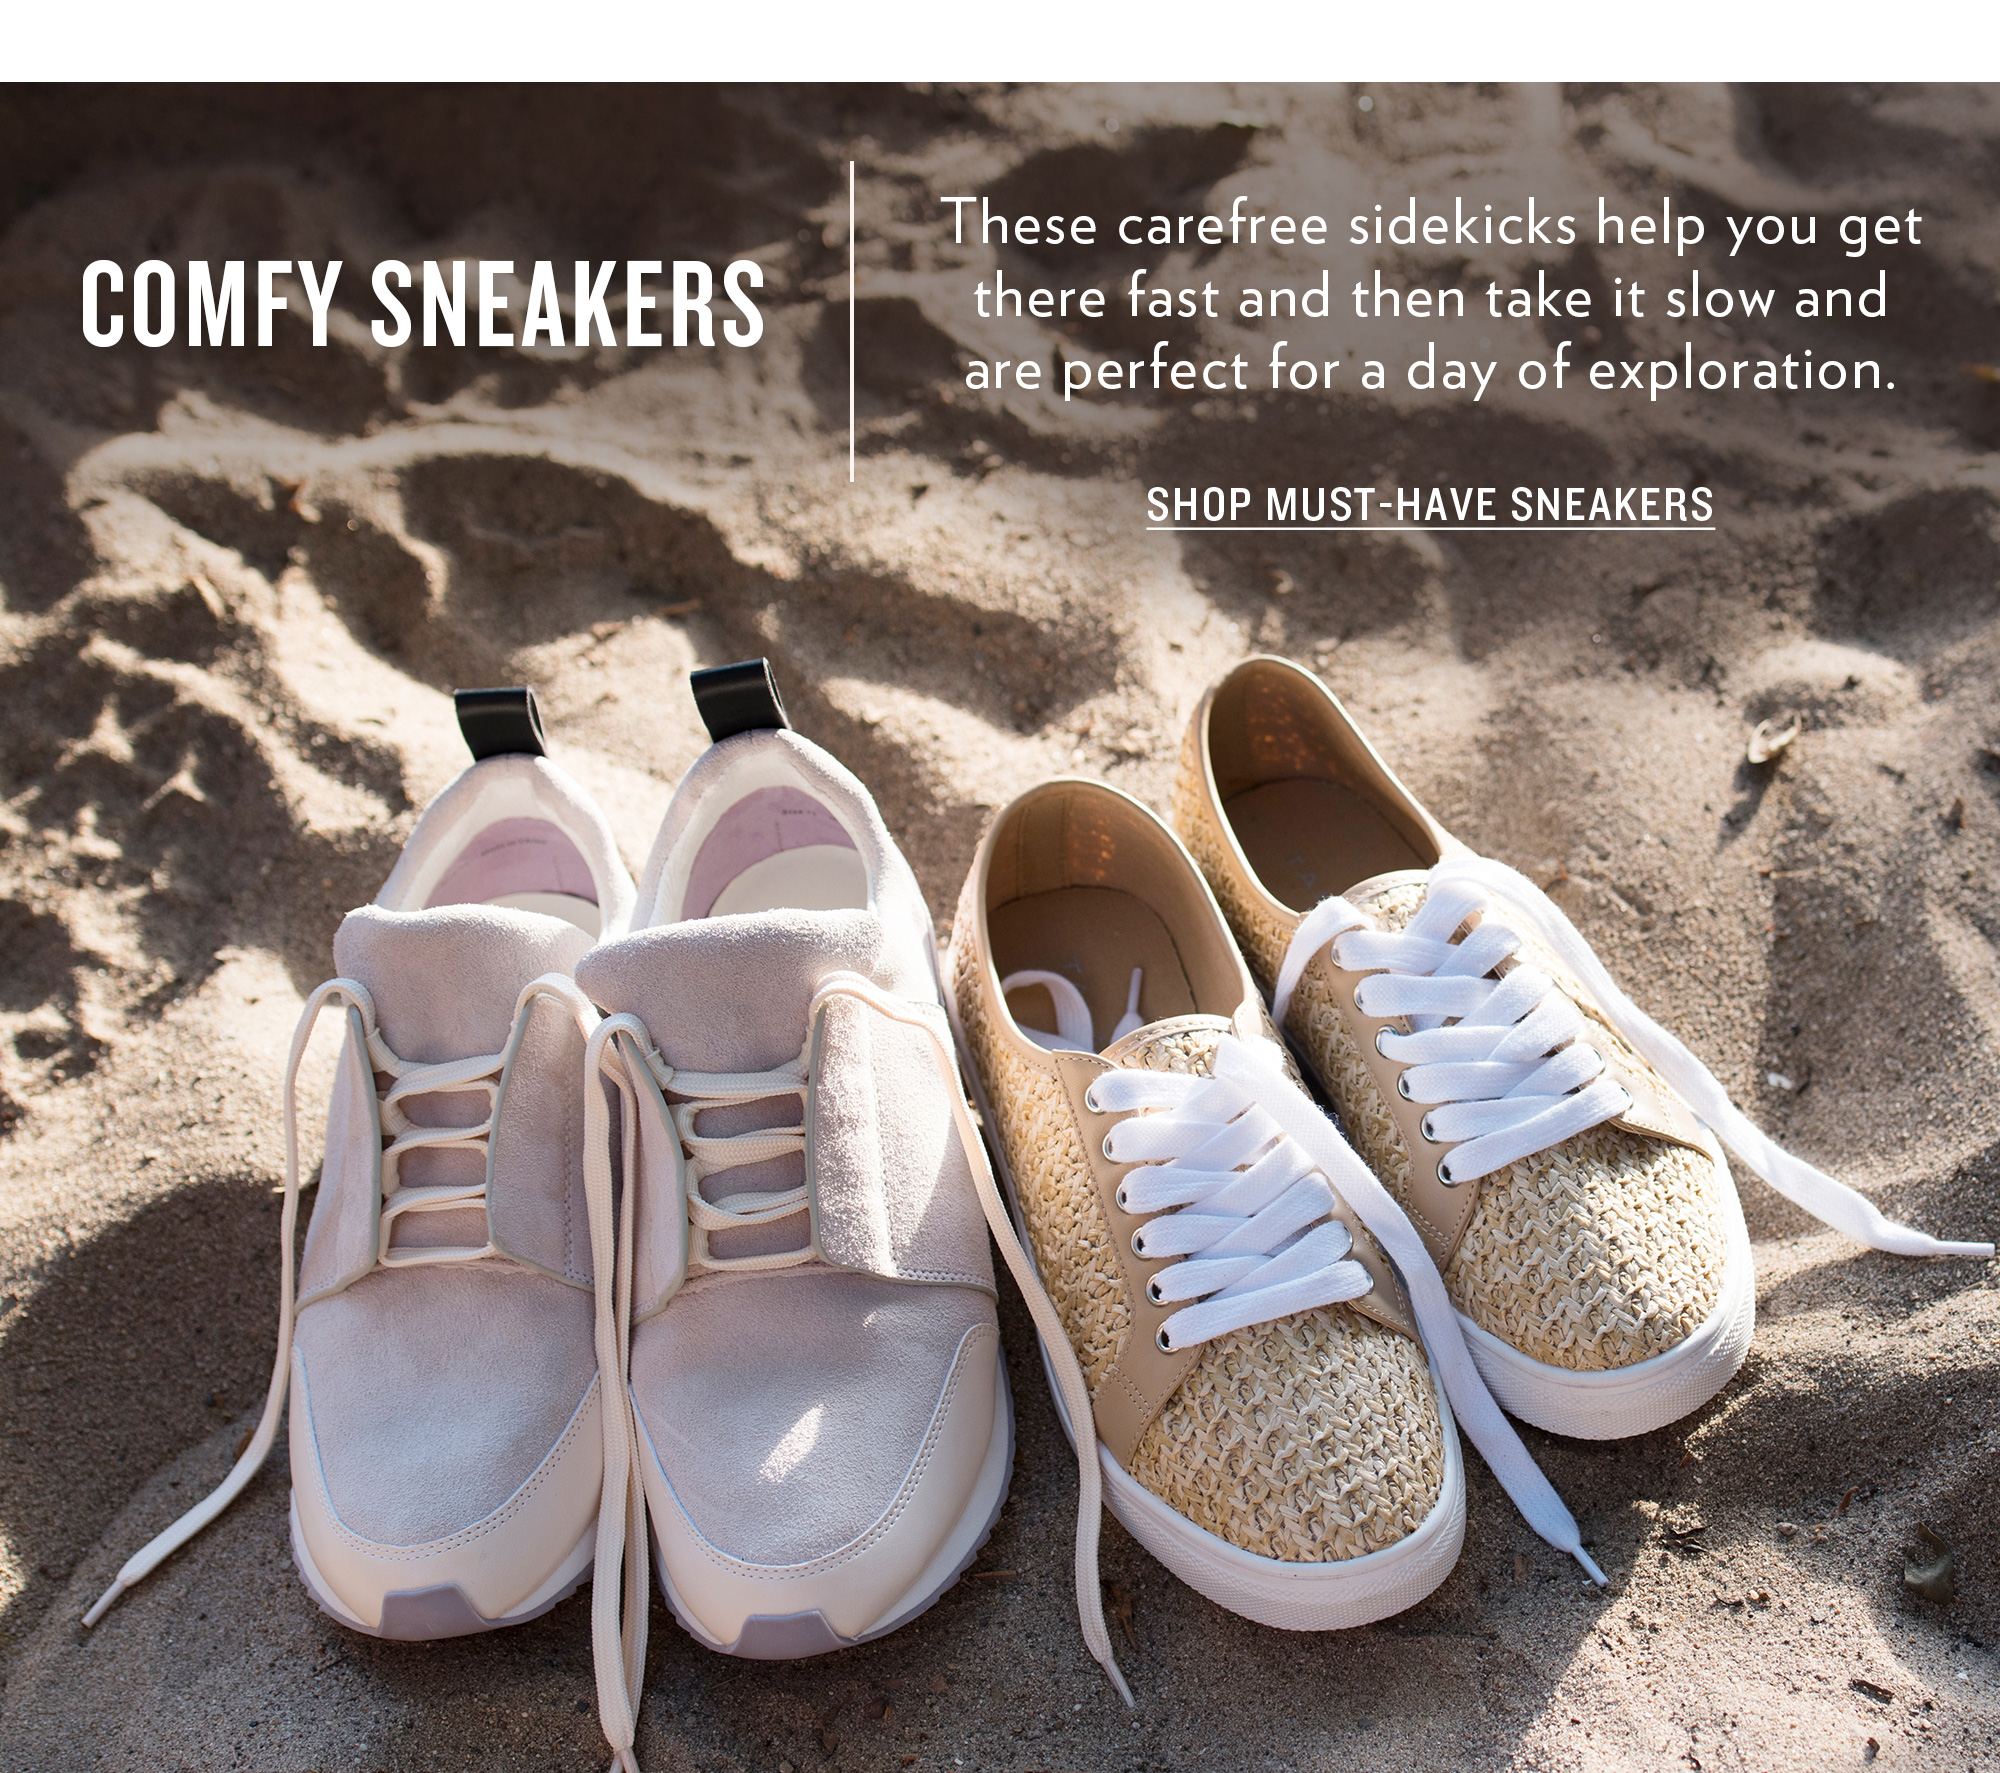 Shop Comfy Sneakers